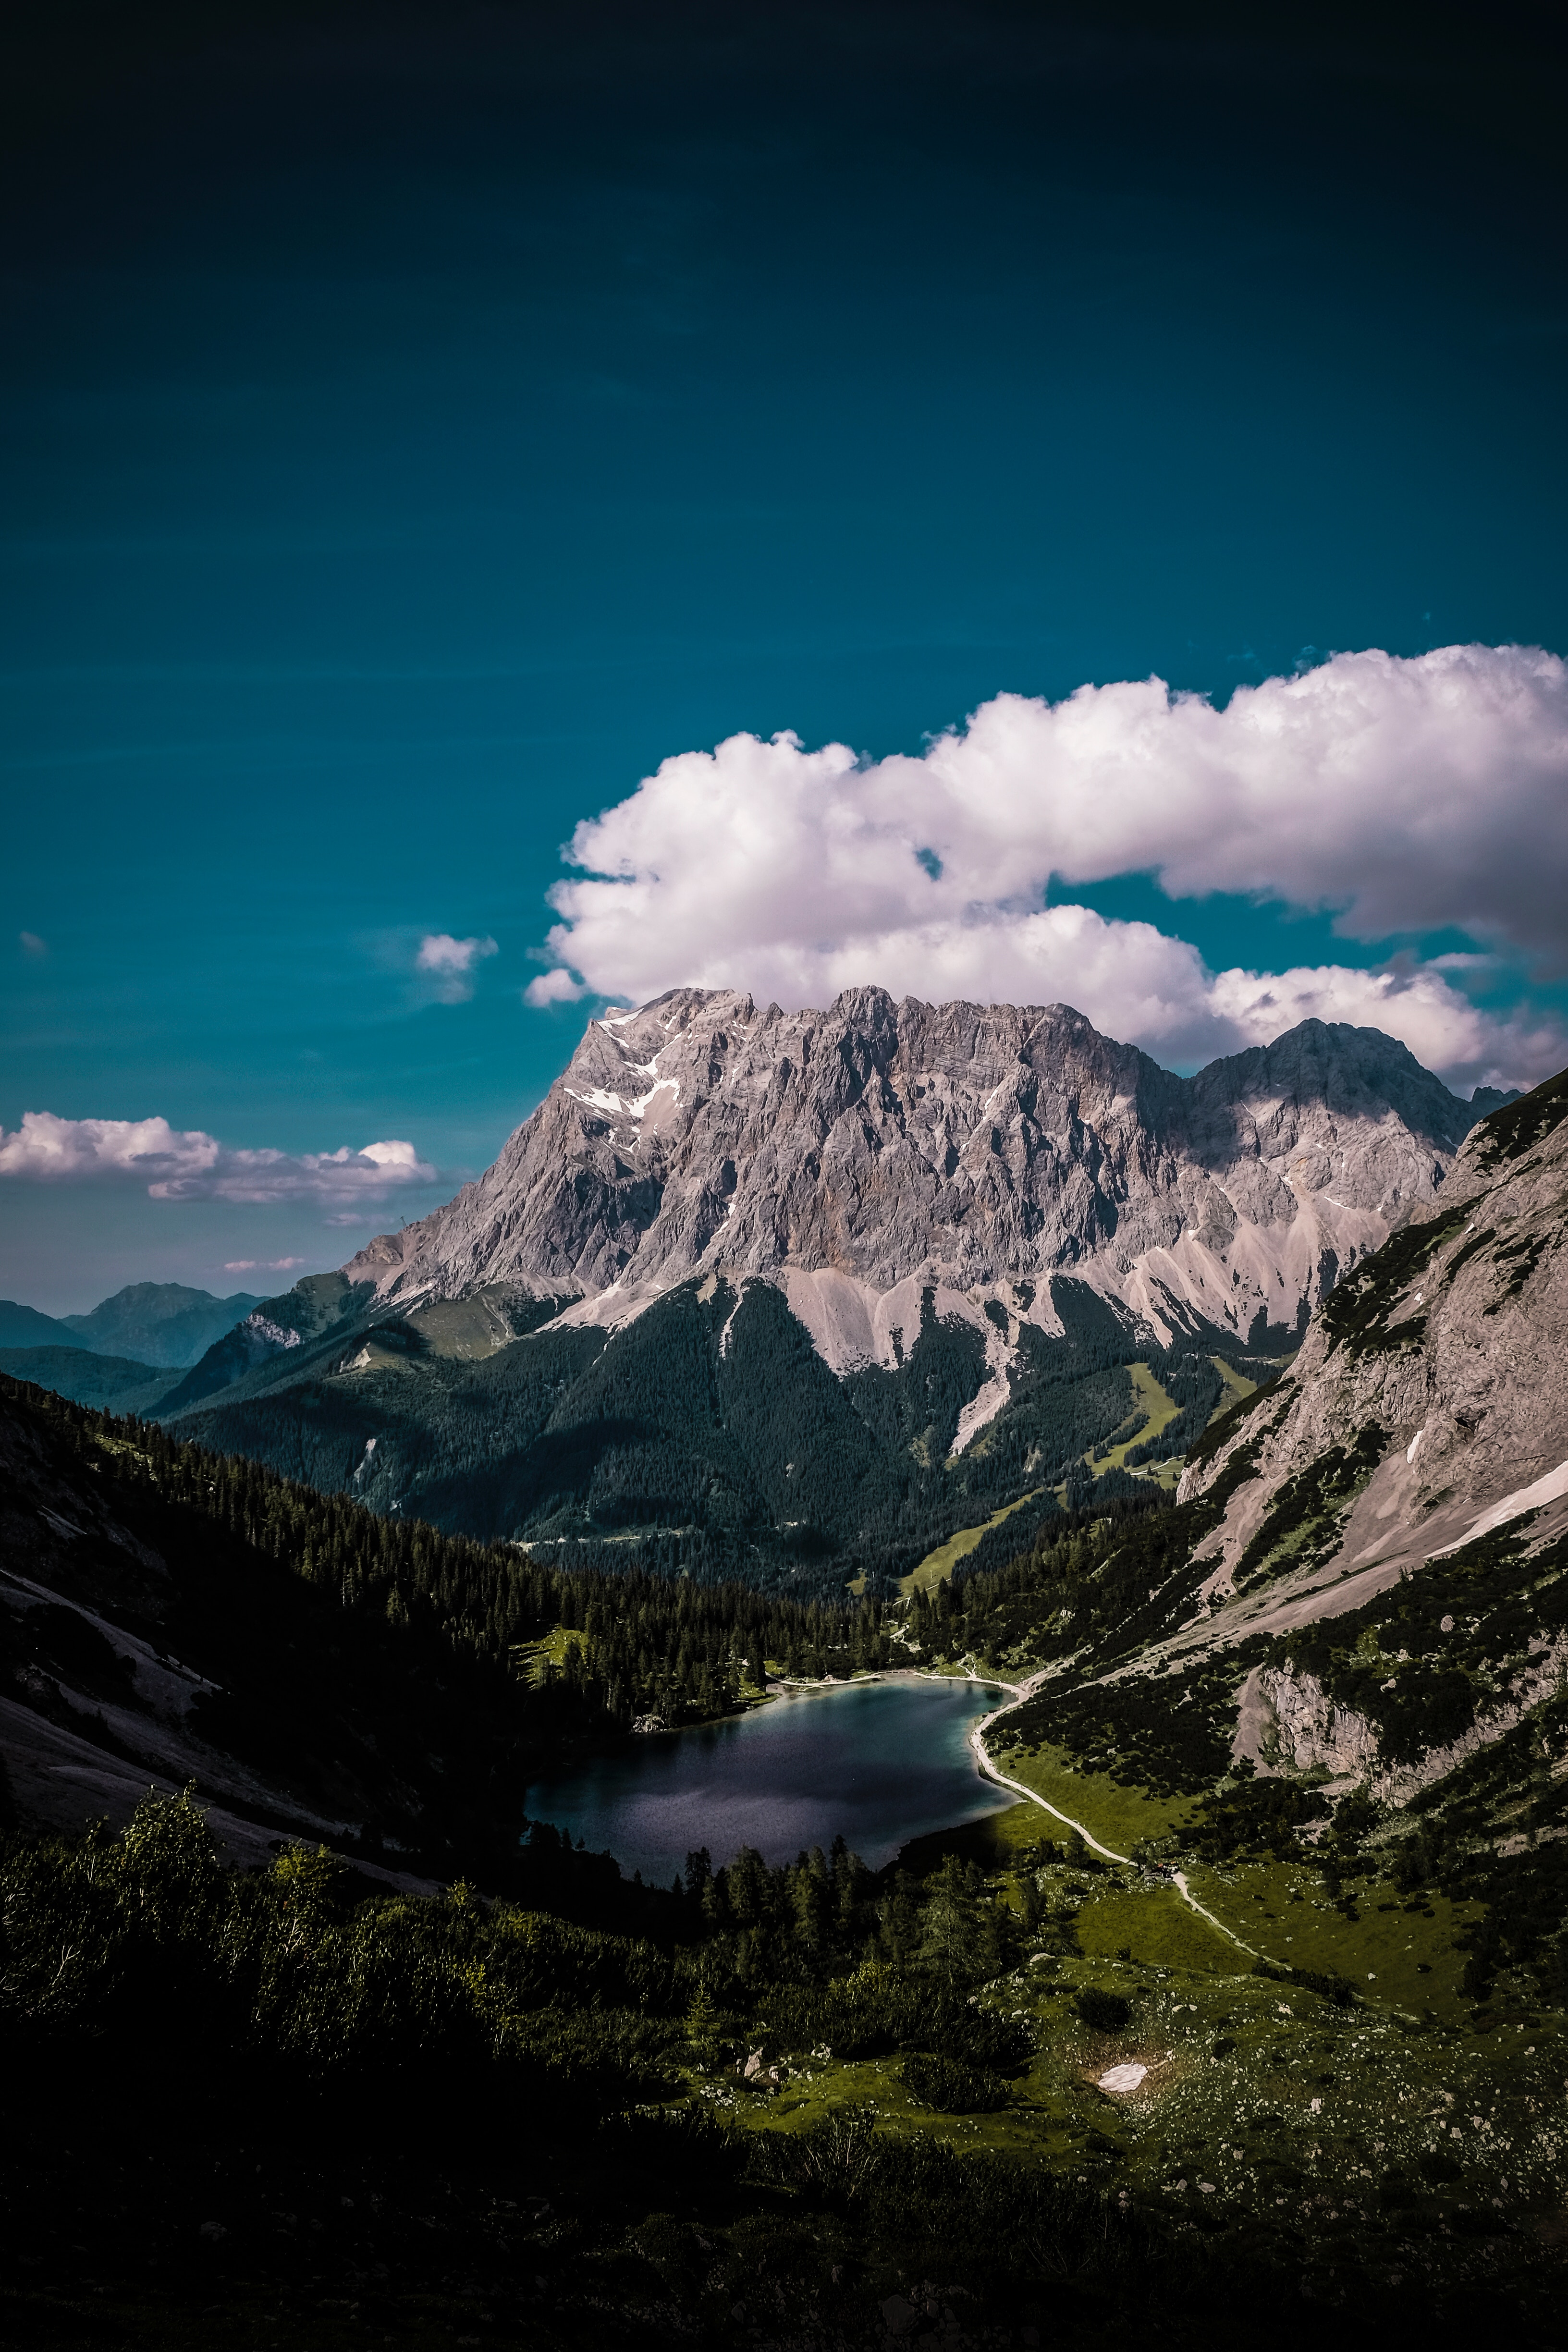 154812 download wallpaper Nature, Mountains, Clouds, View From Above, Vertex, Top, Lake, Austria, Erwald, Ehrwald screensavers and pictures for free